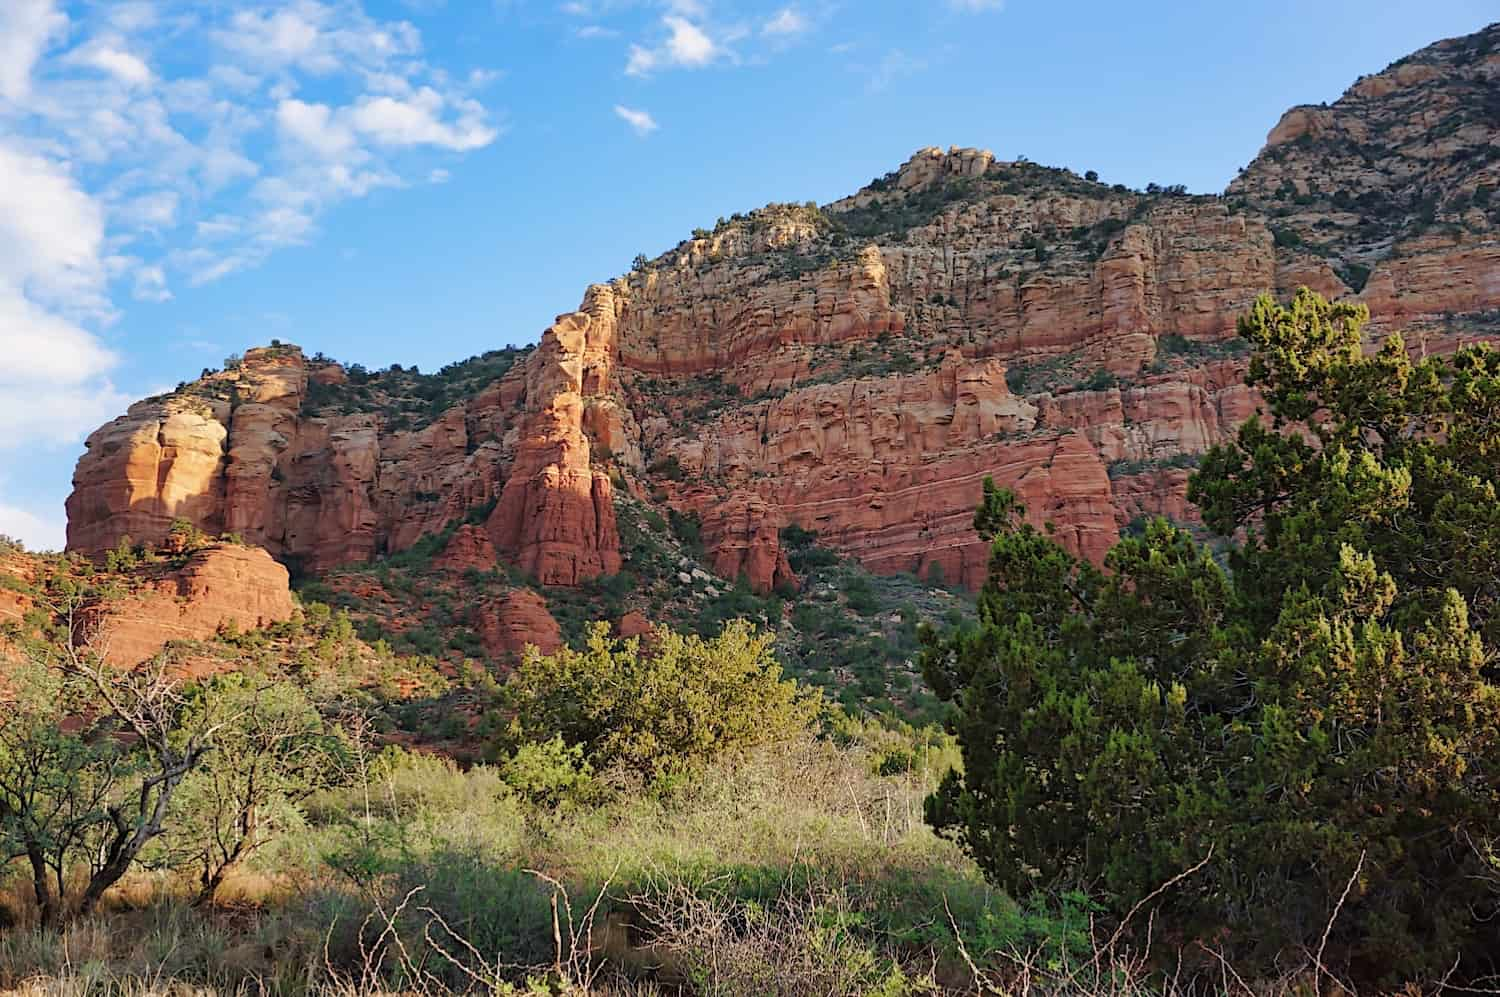 Weekend in Sedona - Scenery